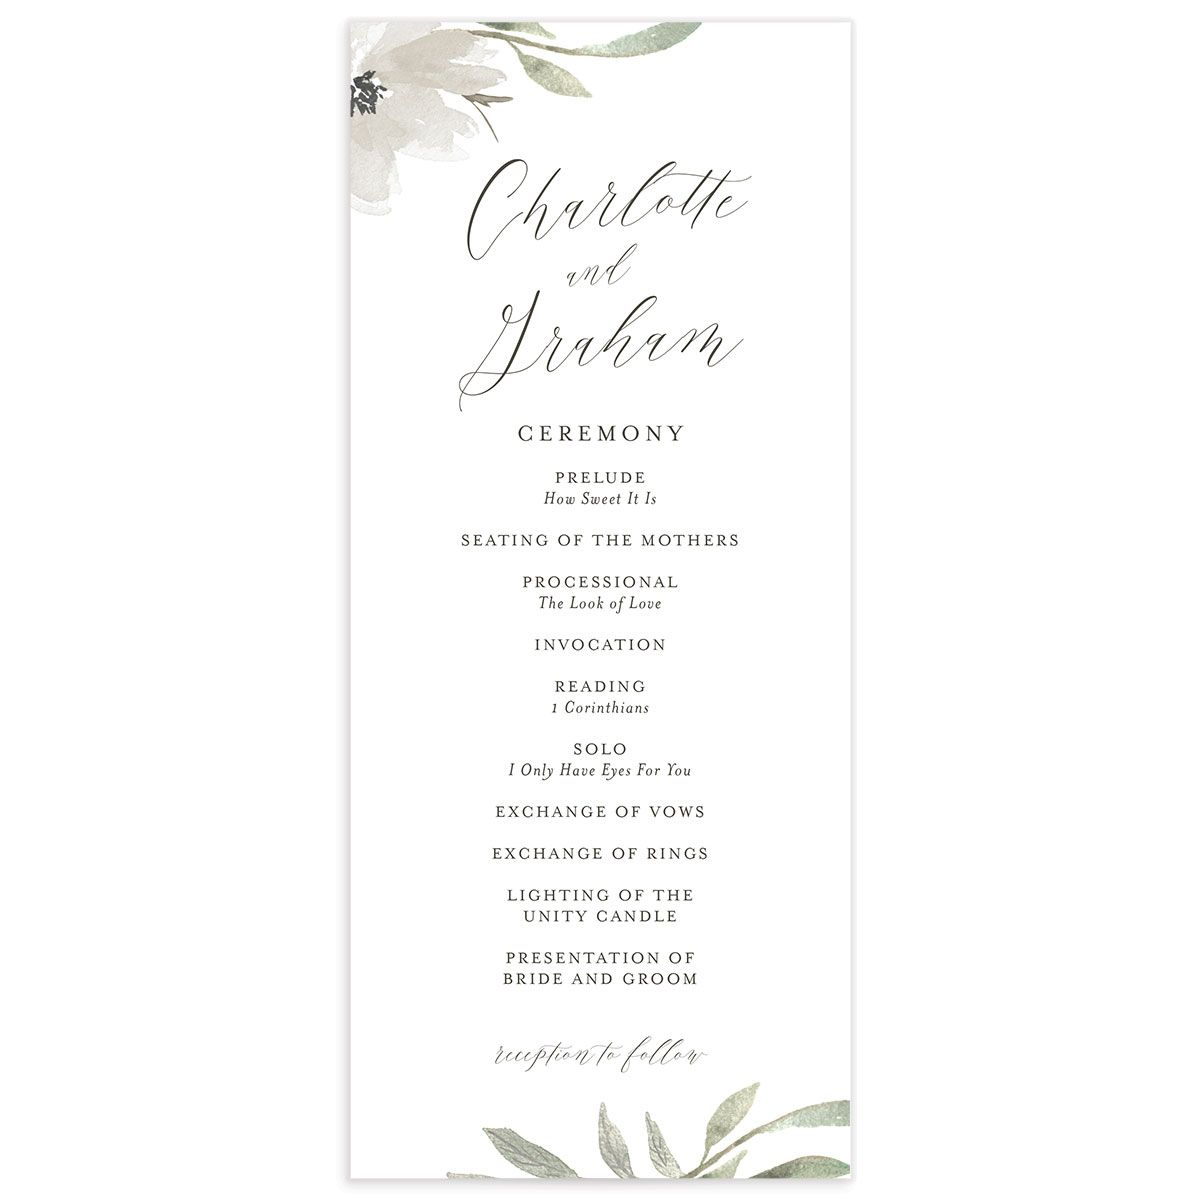 muted floral wedding programs in white